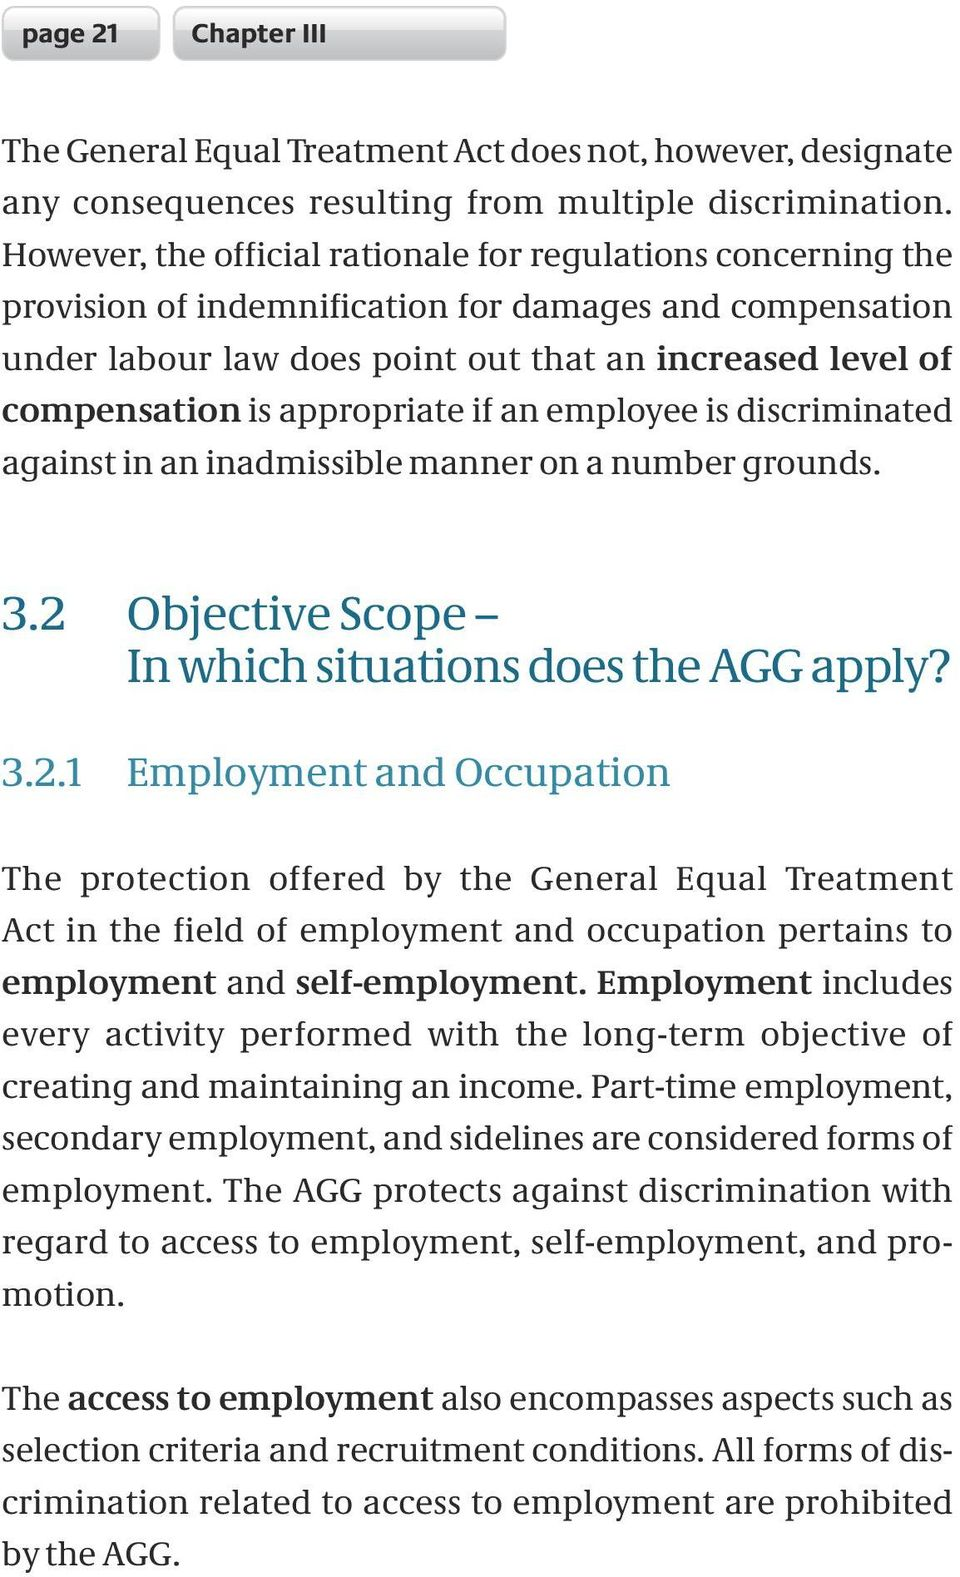 appropriate if an employee is discriminated against in an inadmissible manner on a number grounds. 3.2